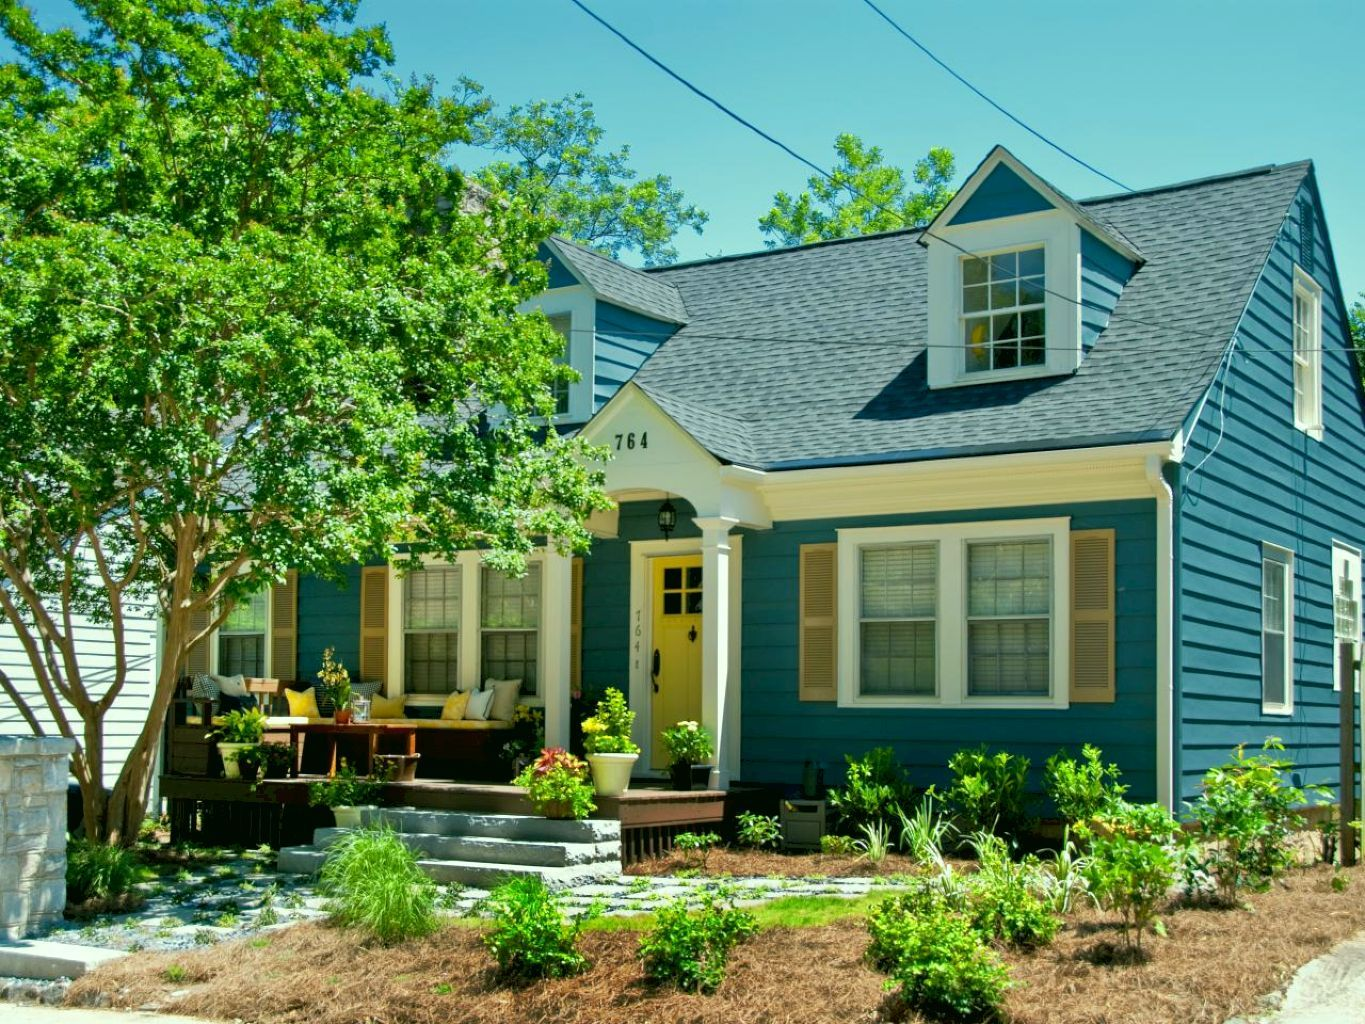 50 Traditional Cape Cod House Exterior Ideas Cape Cod House Exterior House Paint Exterior Cape Cod Style House